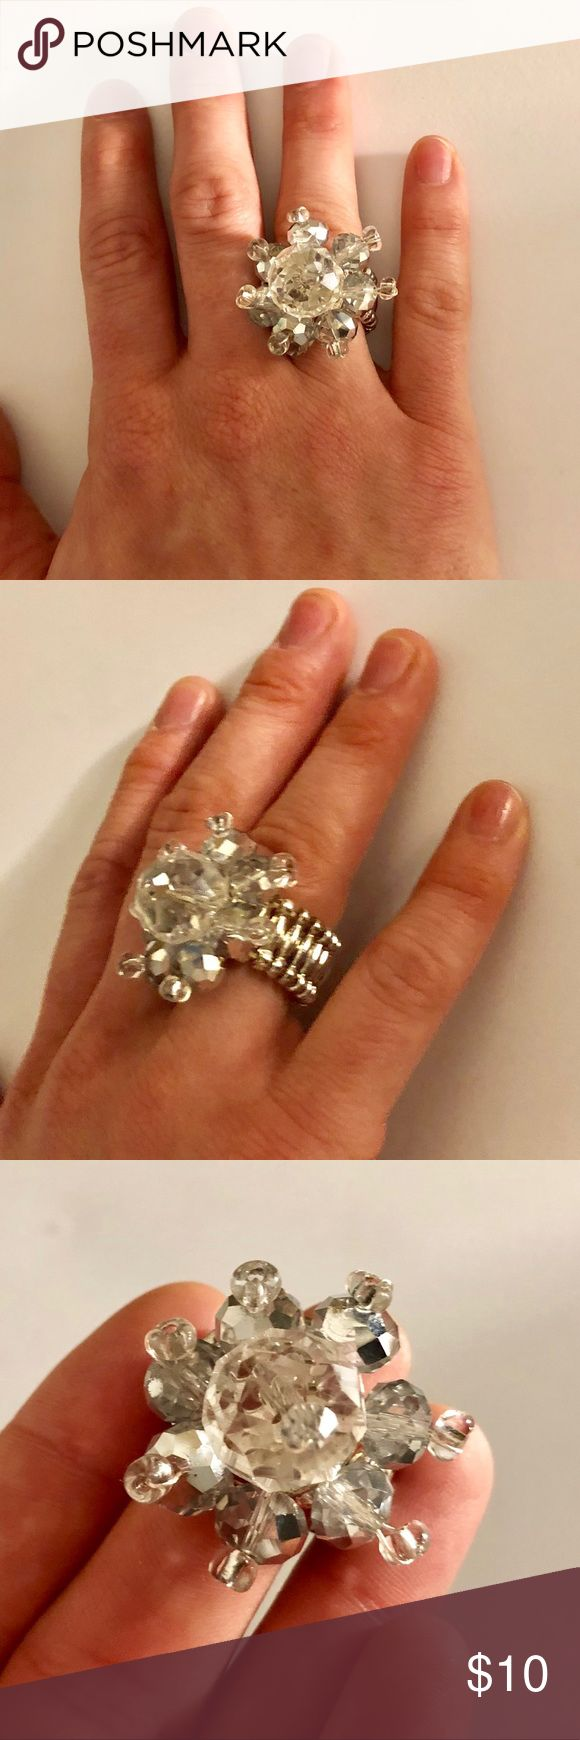 LAST CHANCE SALE Gabrielle Ring *final price* This ring is one size fits all with its elastic band.   -iridescent silver crystal beads -aurora borealis clear crystal beads -comfortable elastic band FlashBauble Jewelry Rings